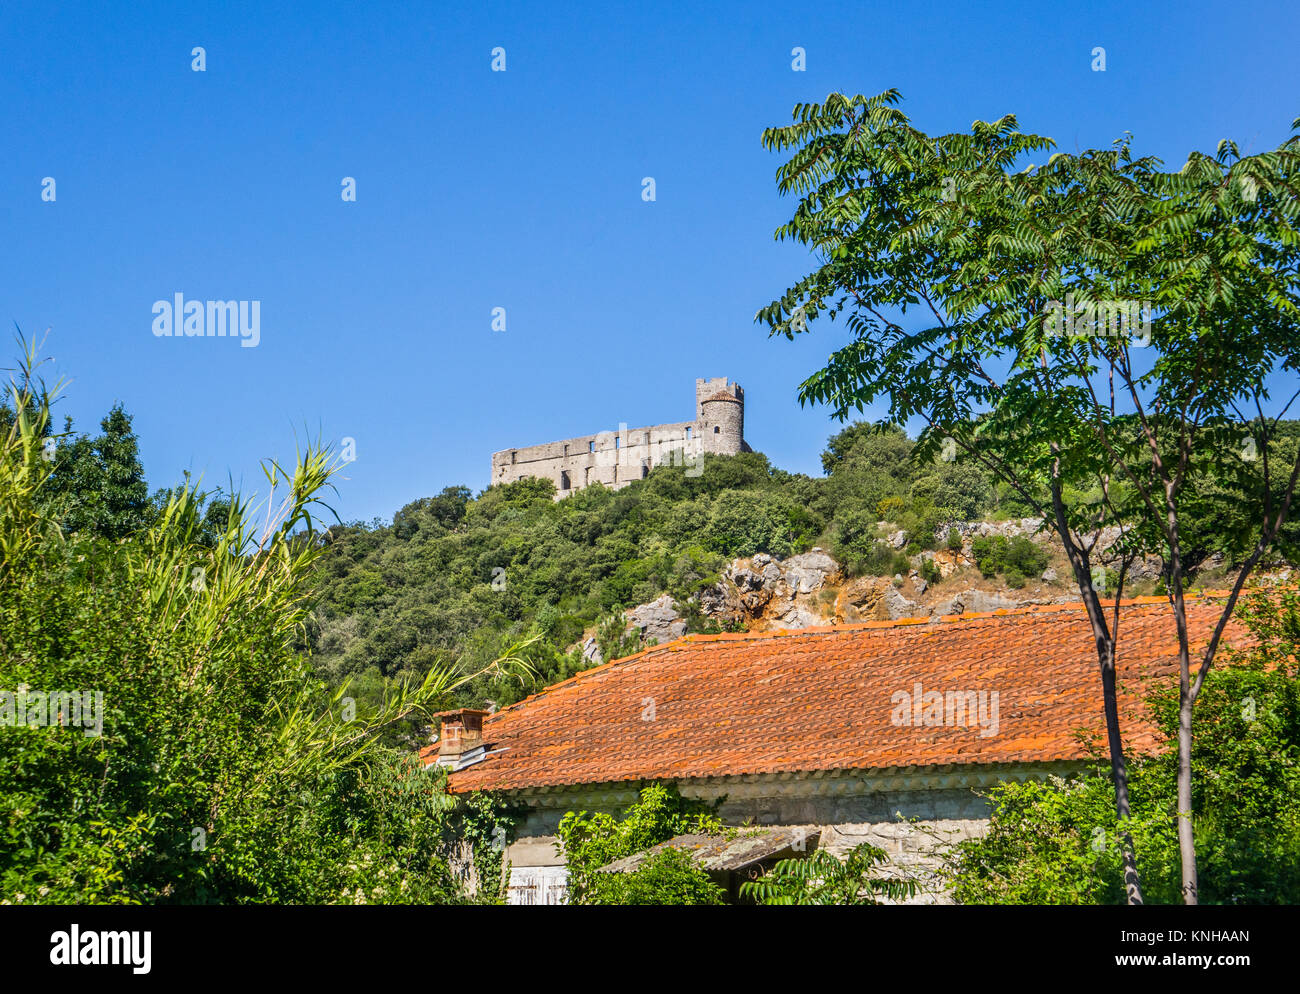 France, Region Occitanie, Gard department,  the ruin of Chateau de Tornac seen from the village of La Madeleine - Stock Image